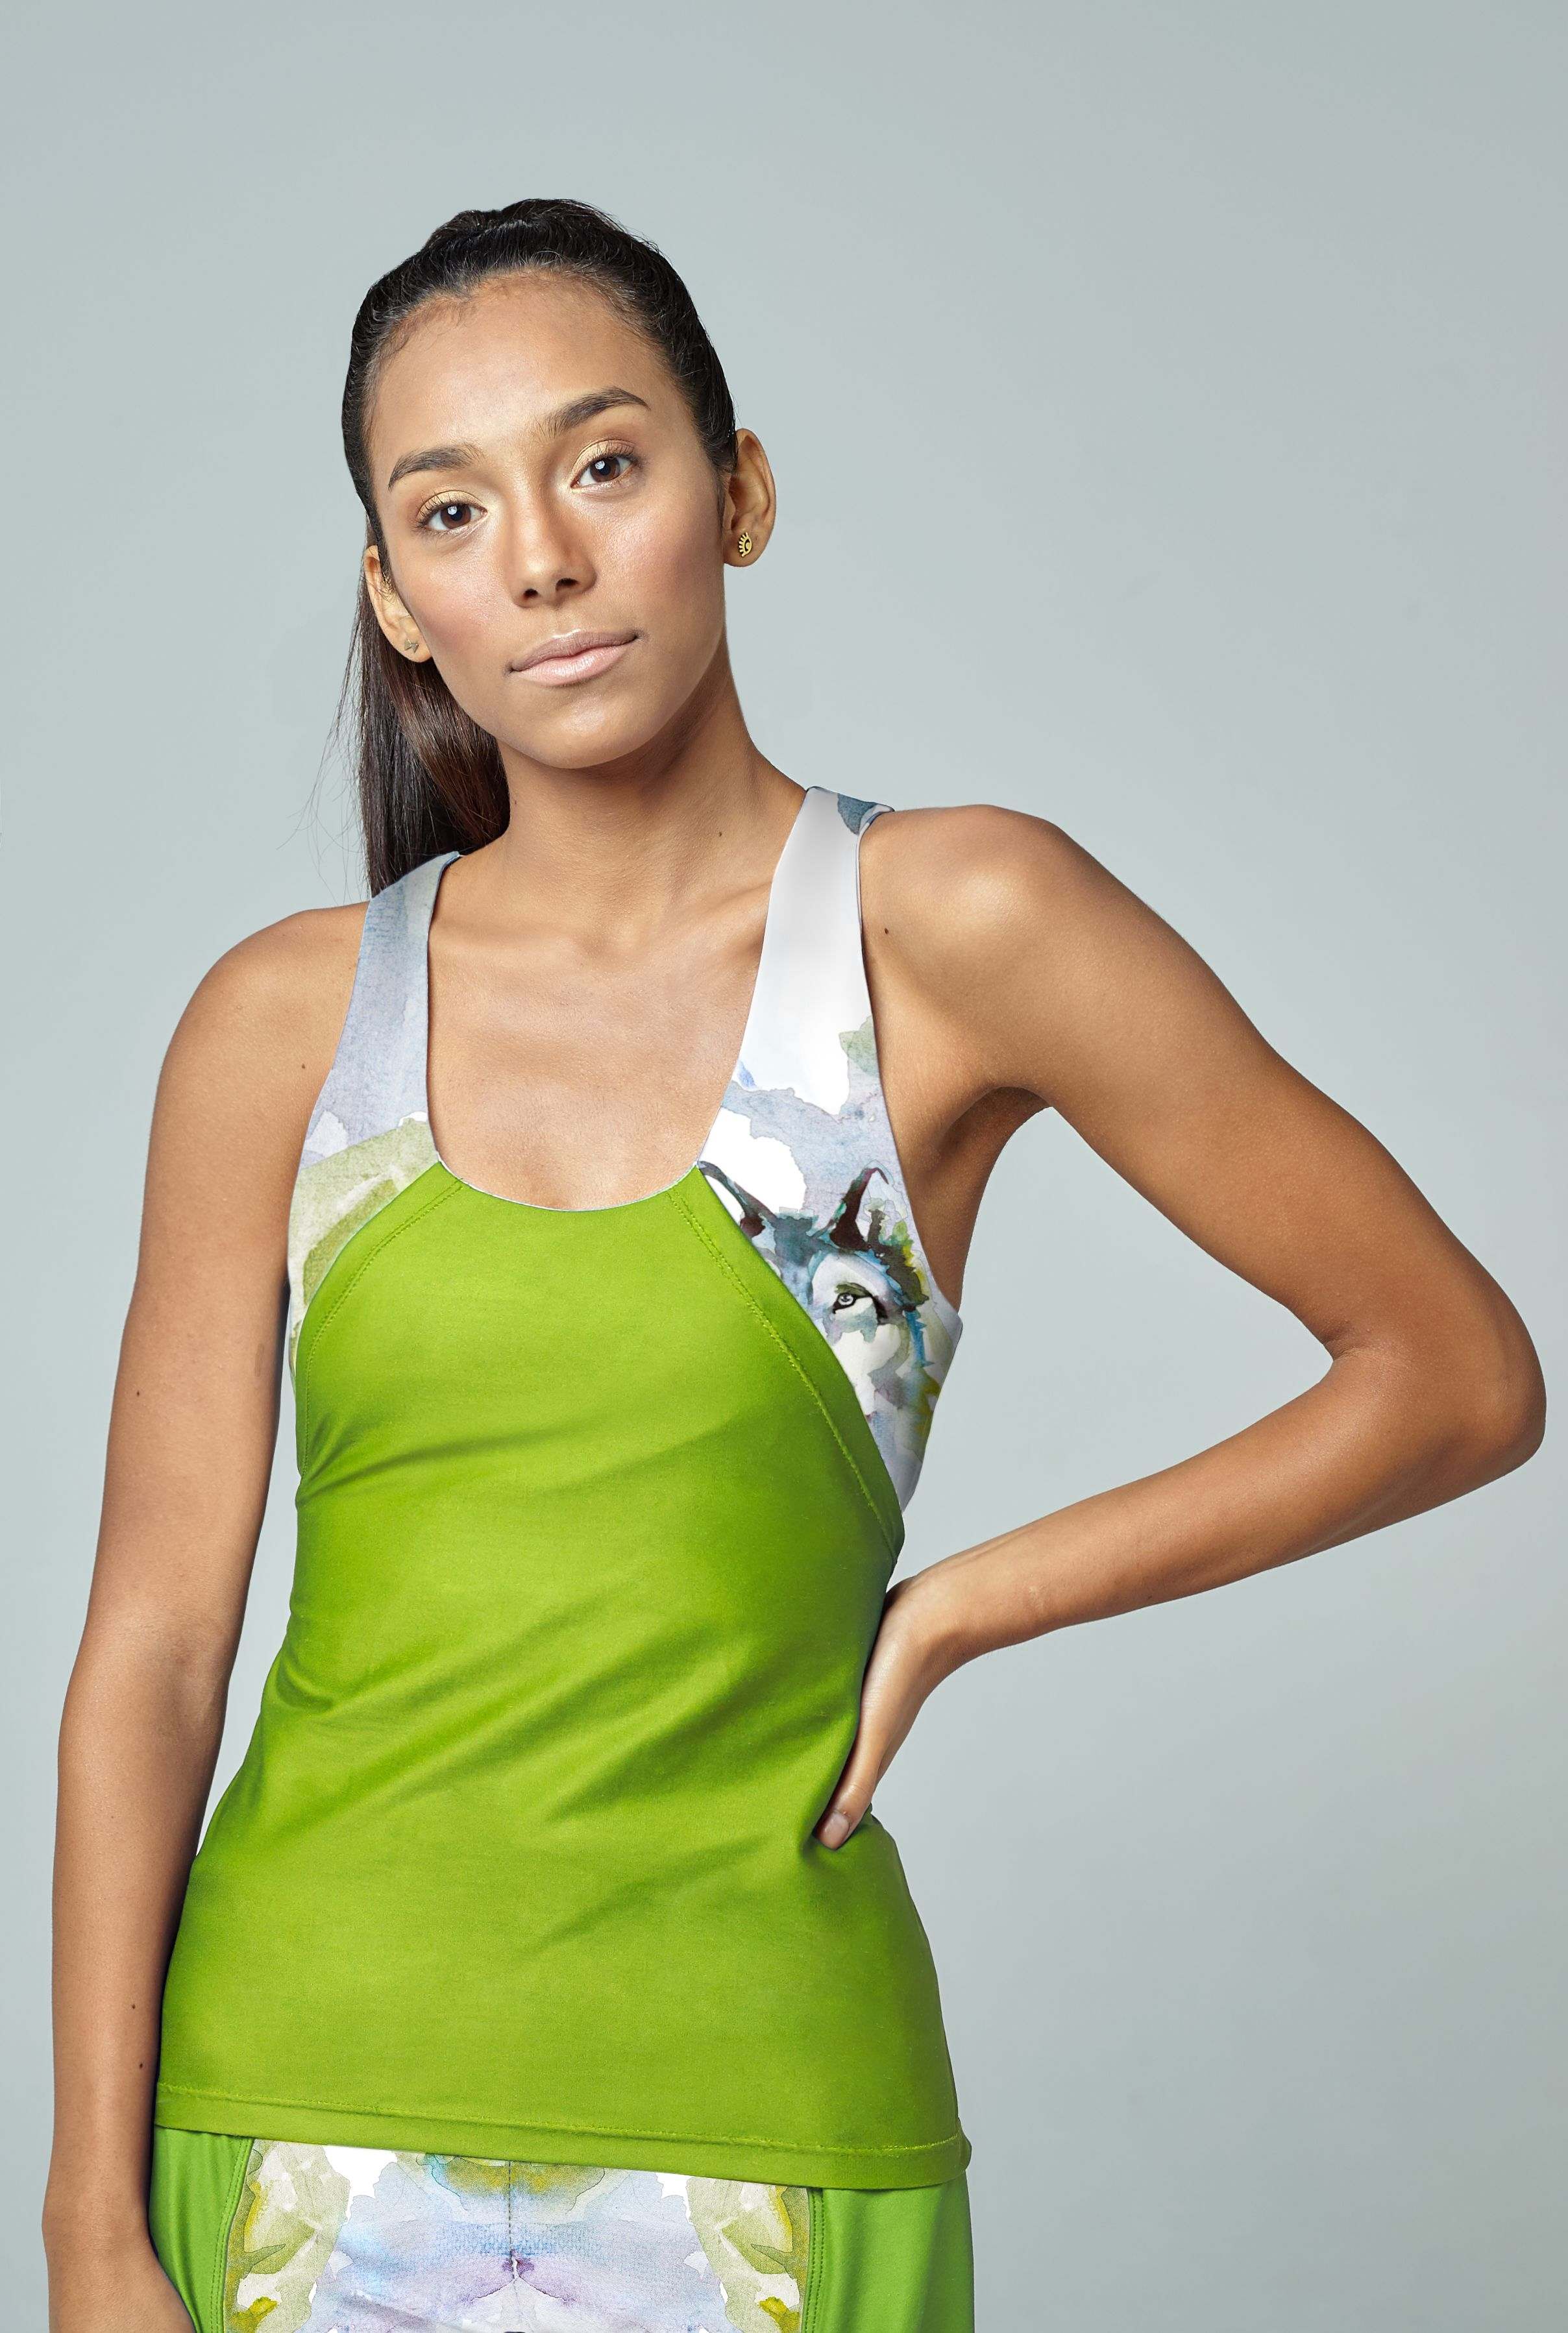 Fashion Sportswear by whitefit. A combination of a sports